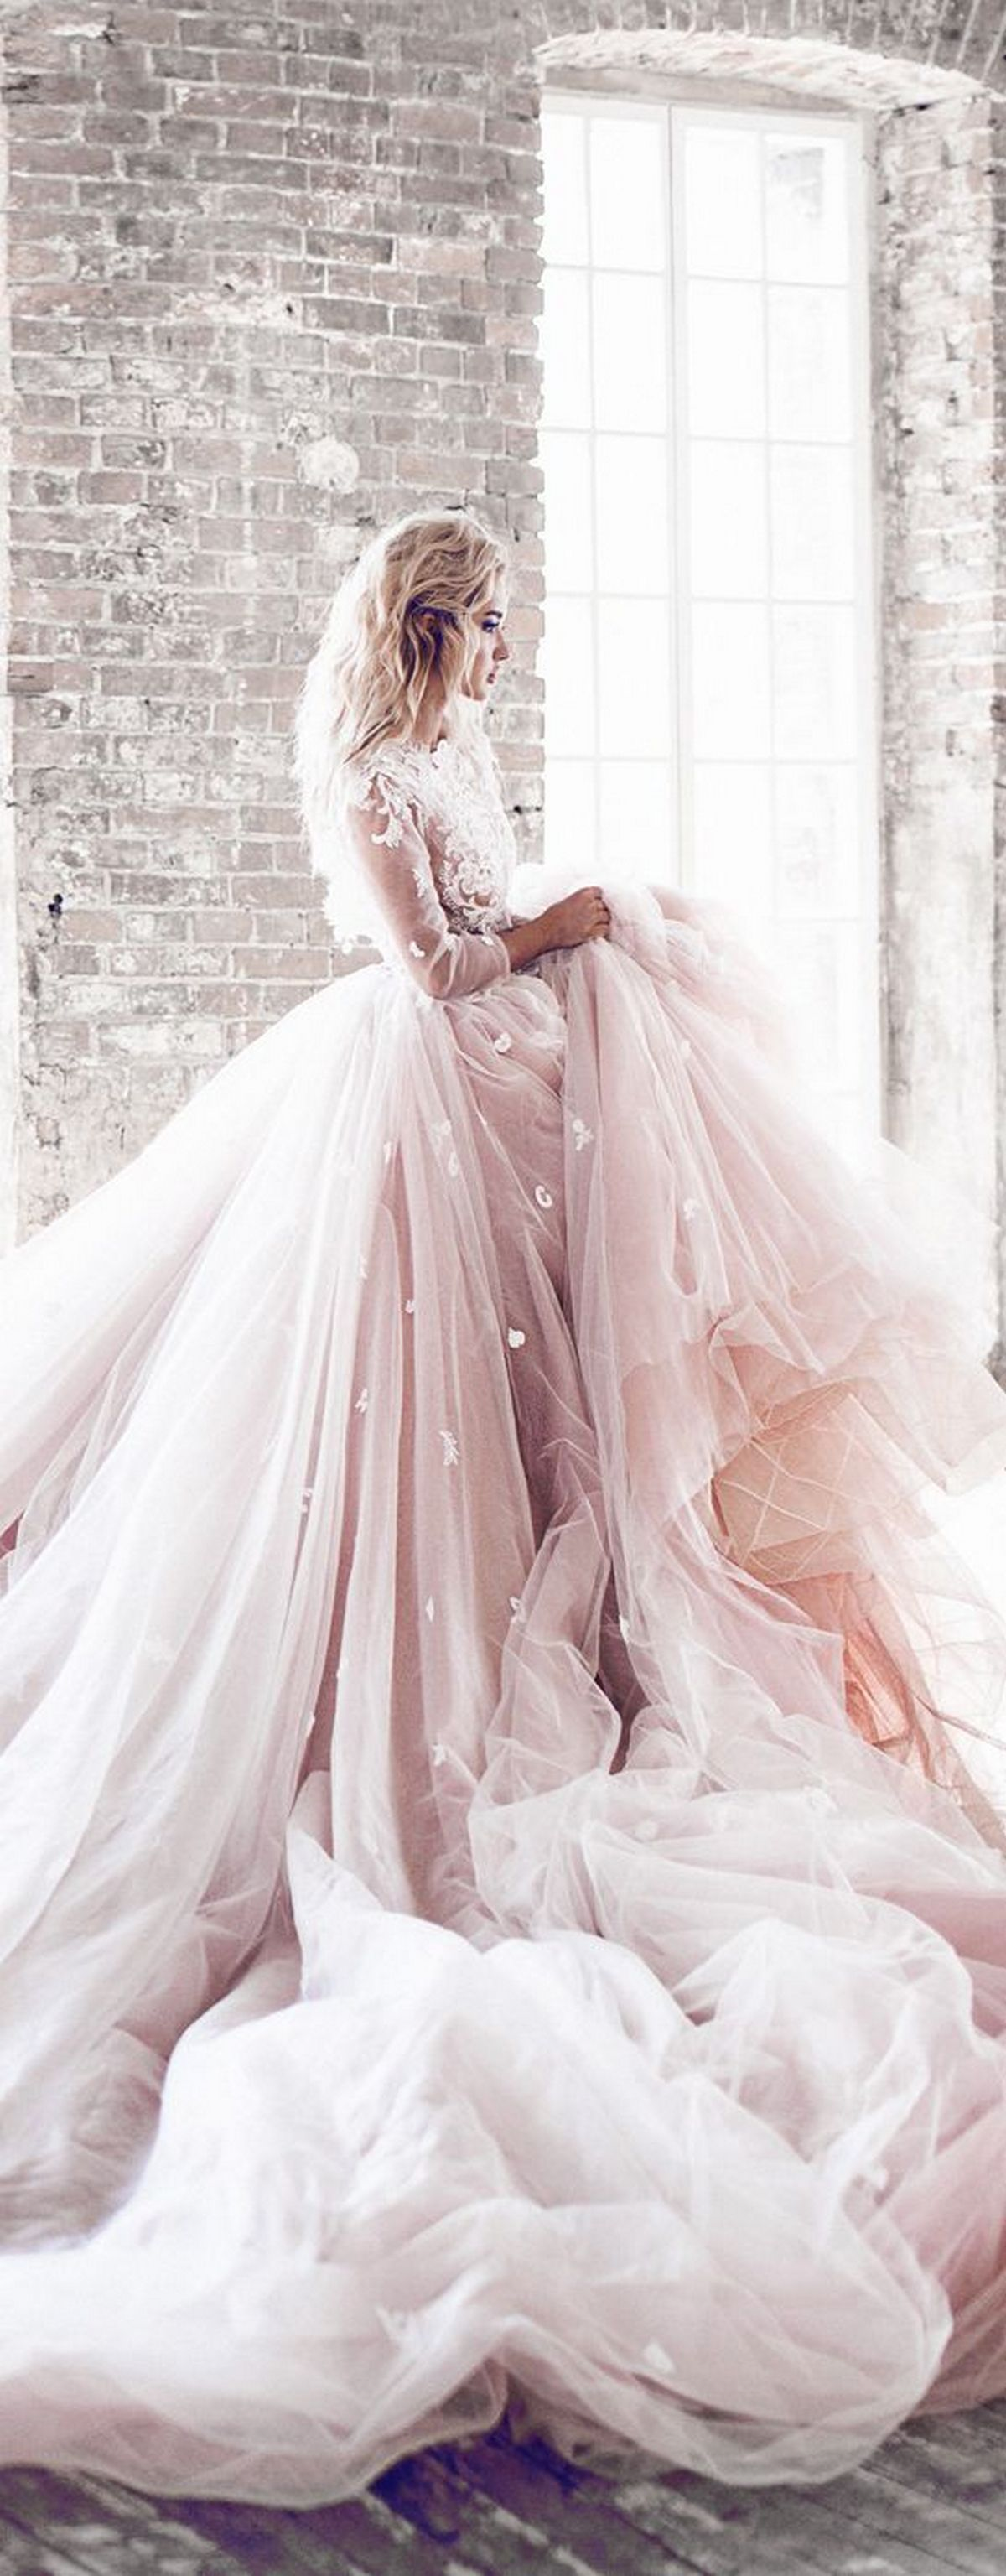 Pink sleeve dress idea for daily action 19 fashion